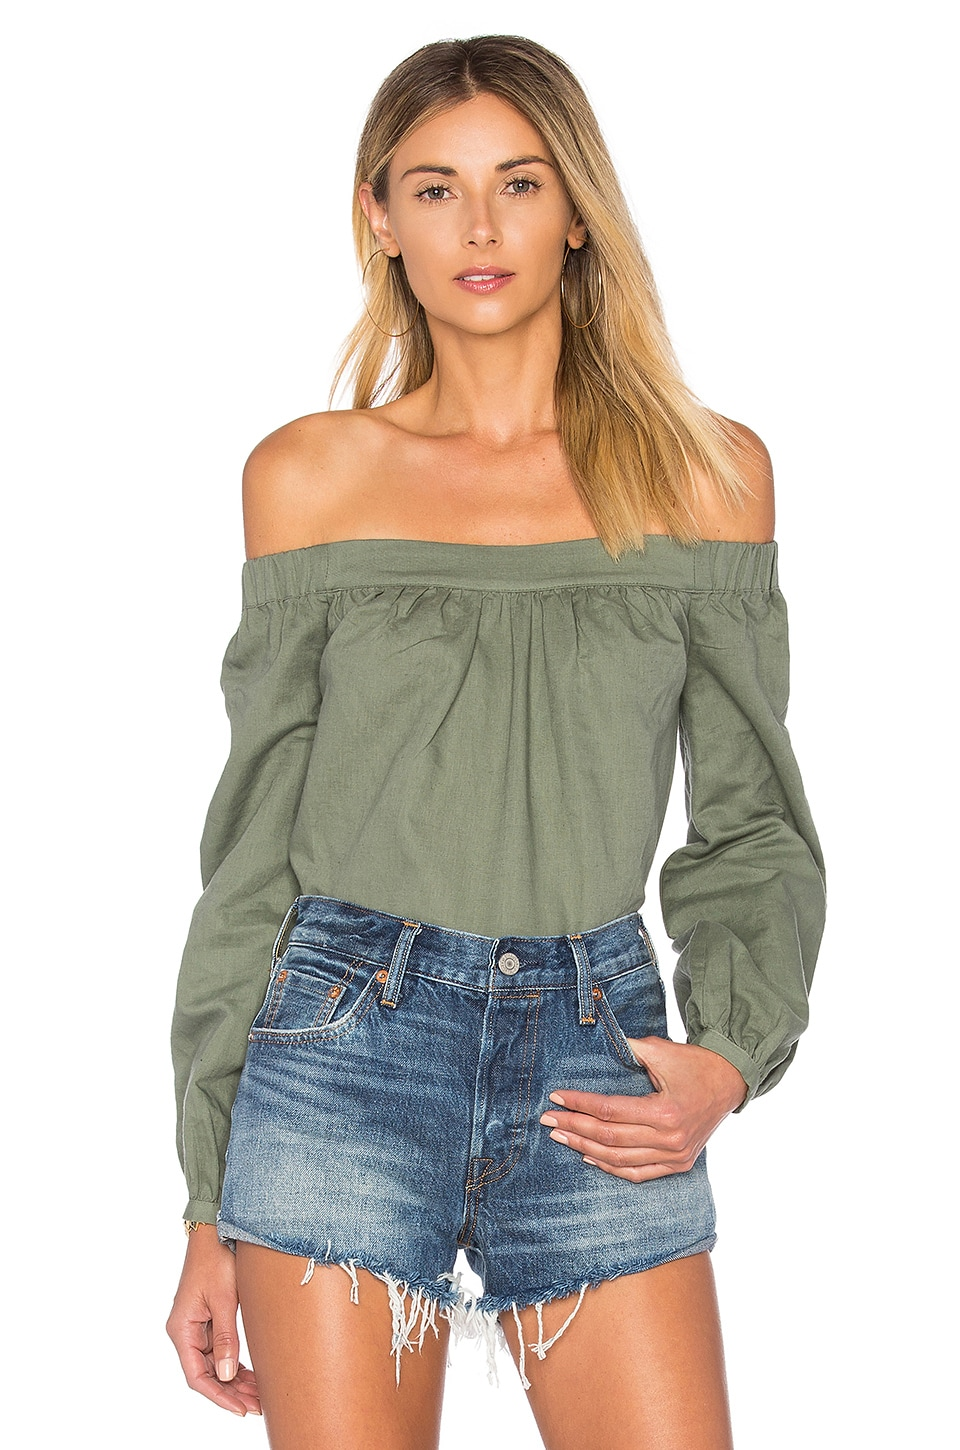 L'Academie The Romantic Linen Top in Fern